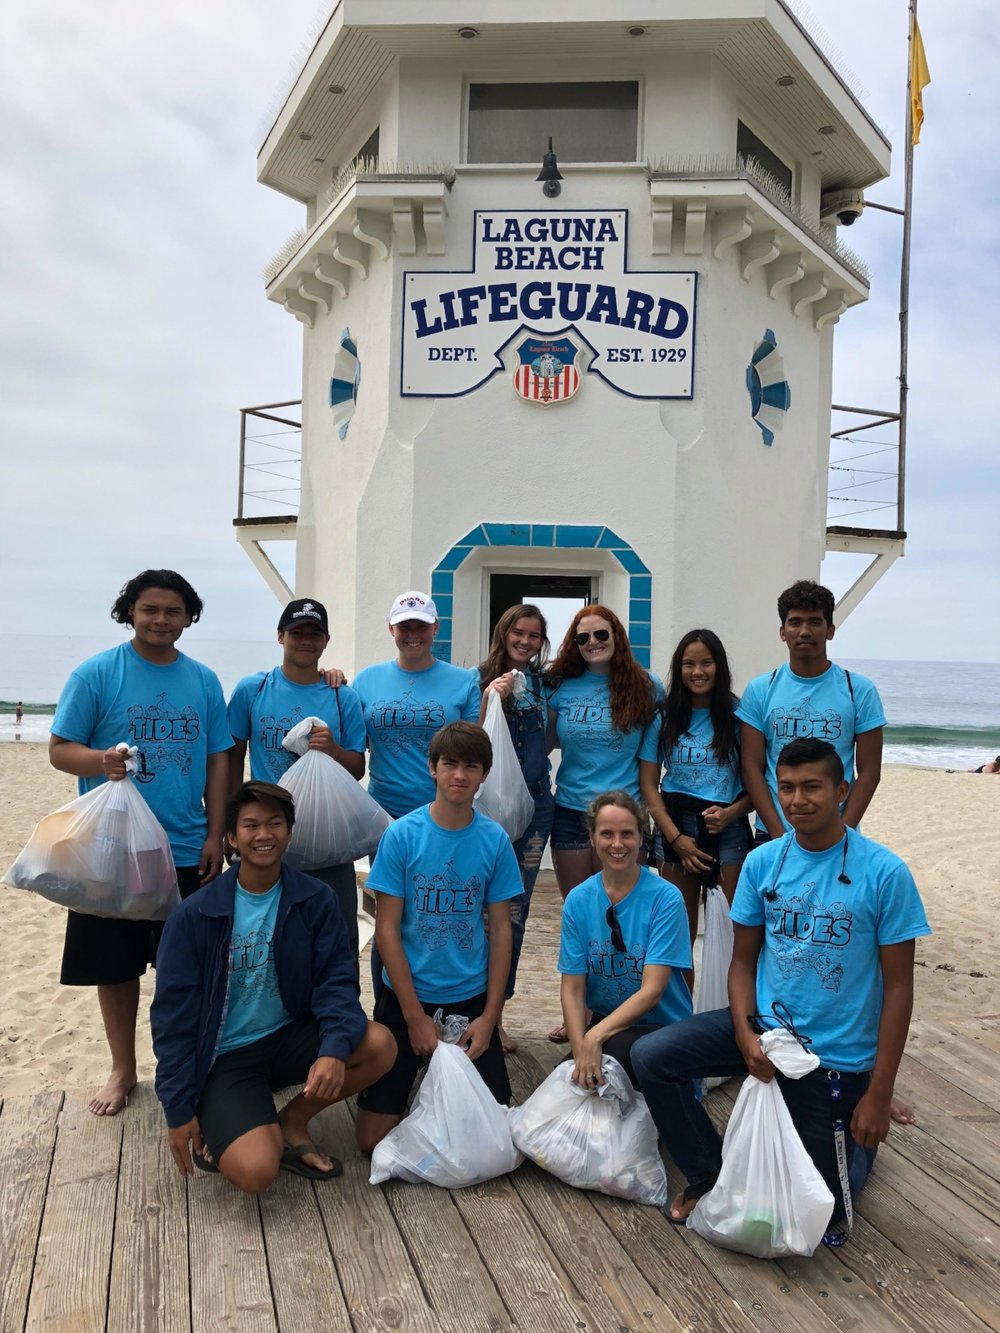 We also hosted a fundraiser cleanup in the spring  - (this being the only cleanup that required a fee) where everyone who participated got one of our t-shirts.